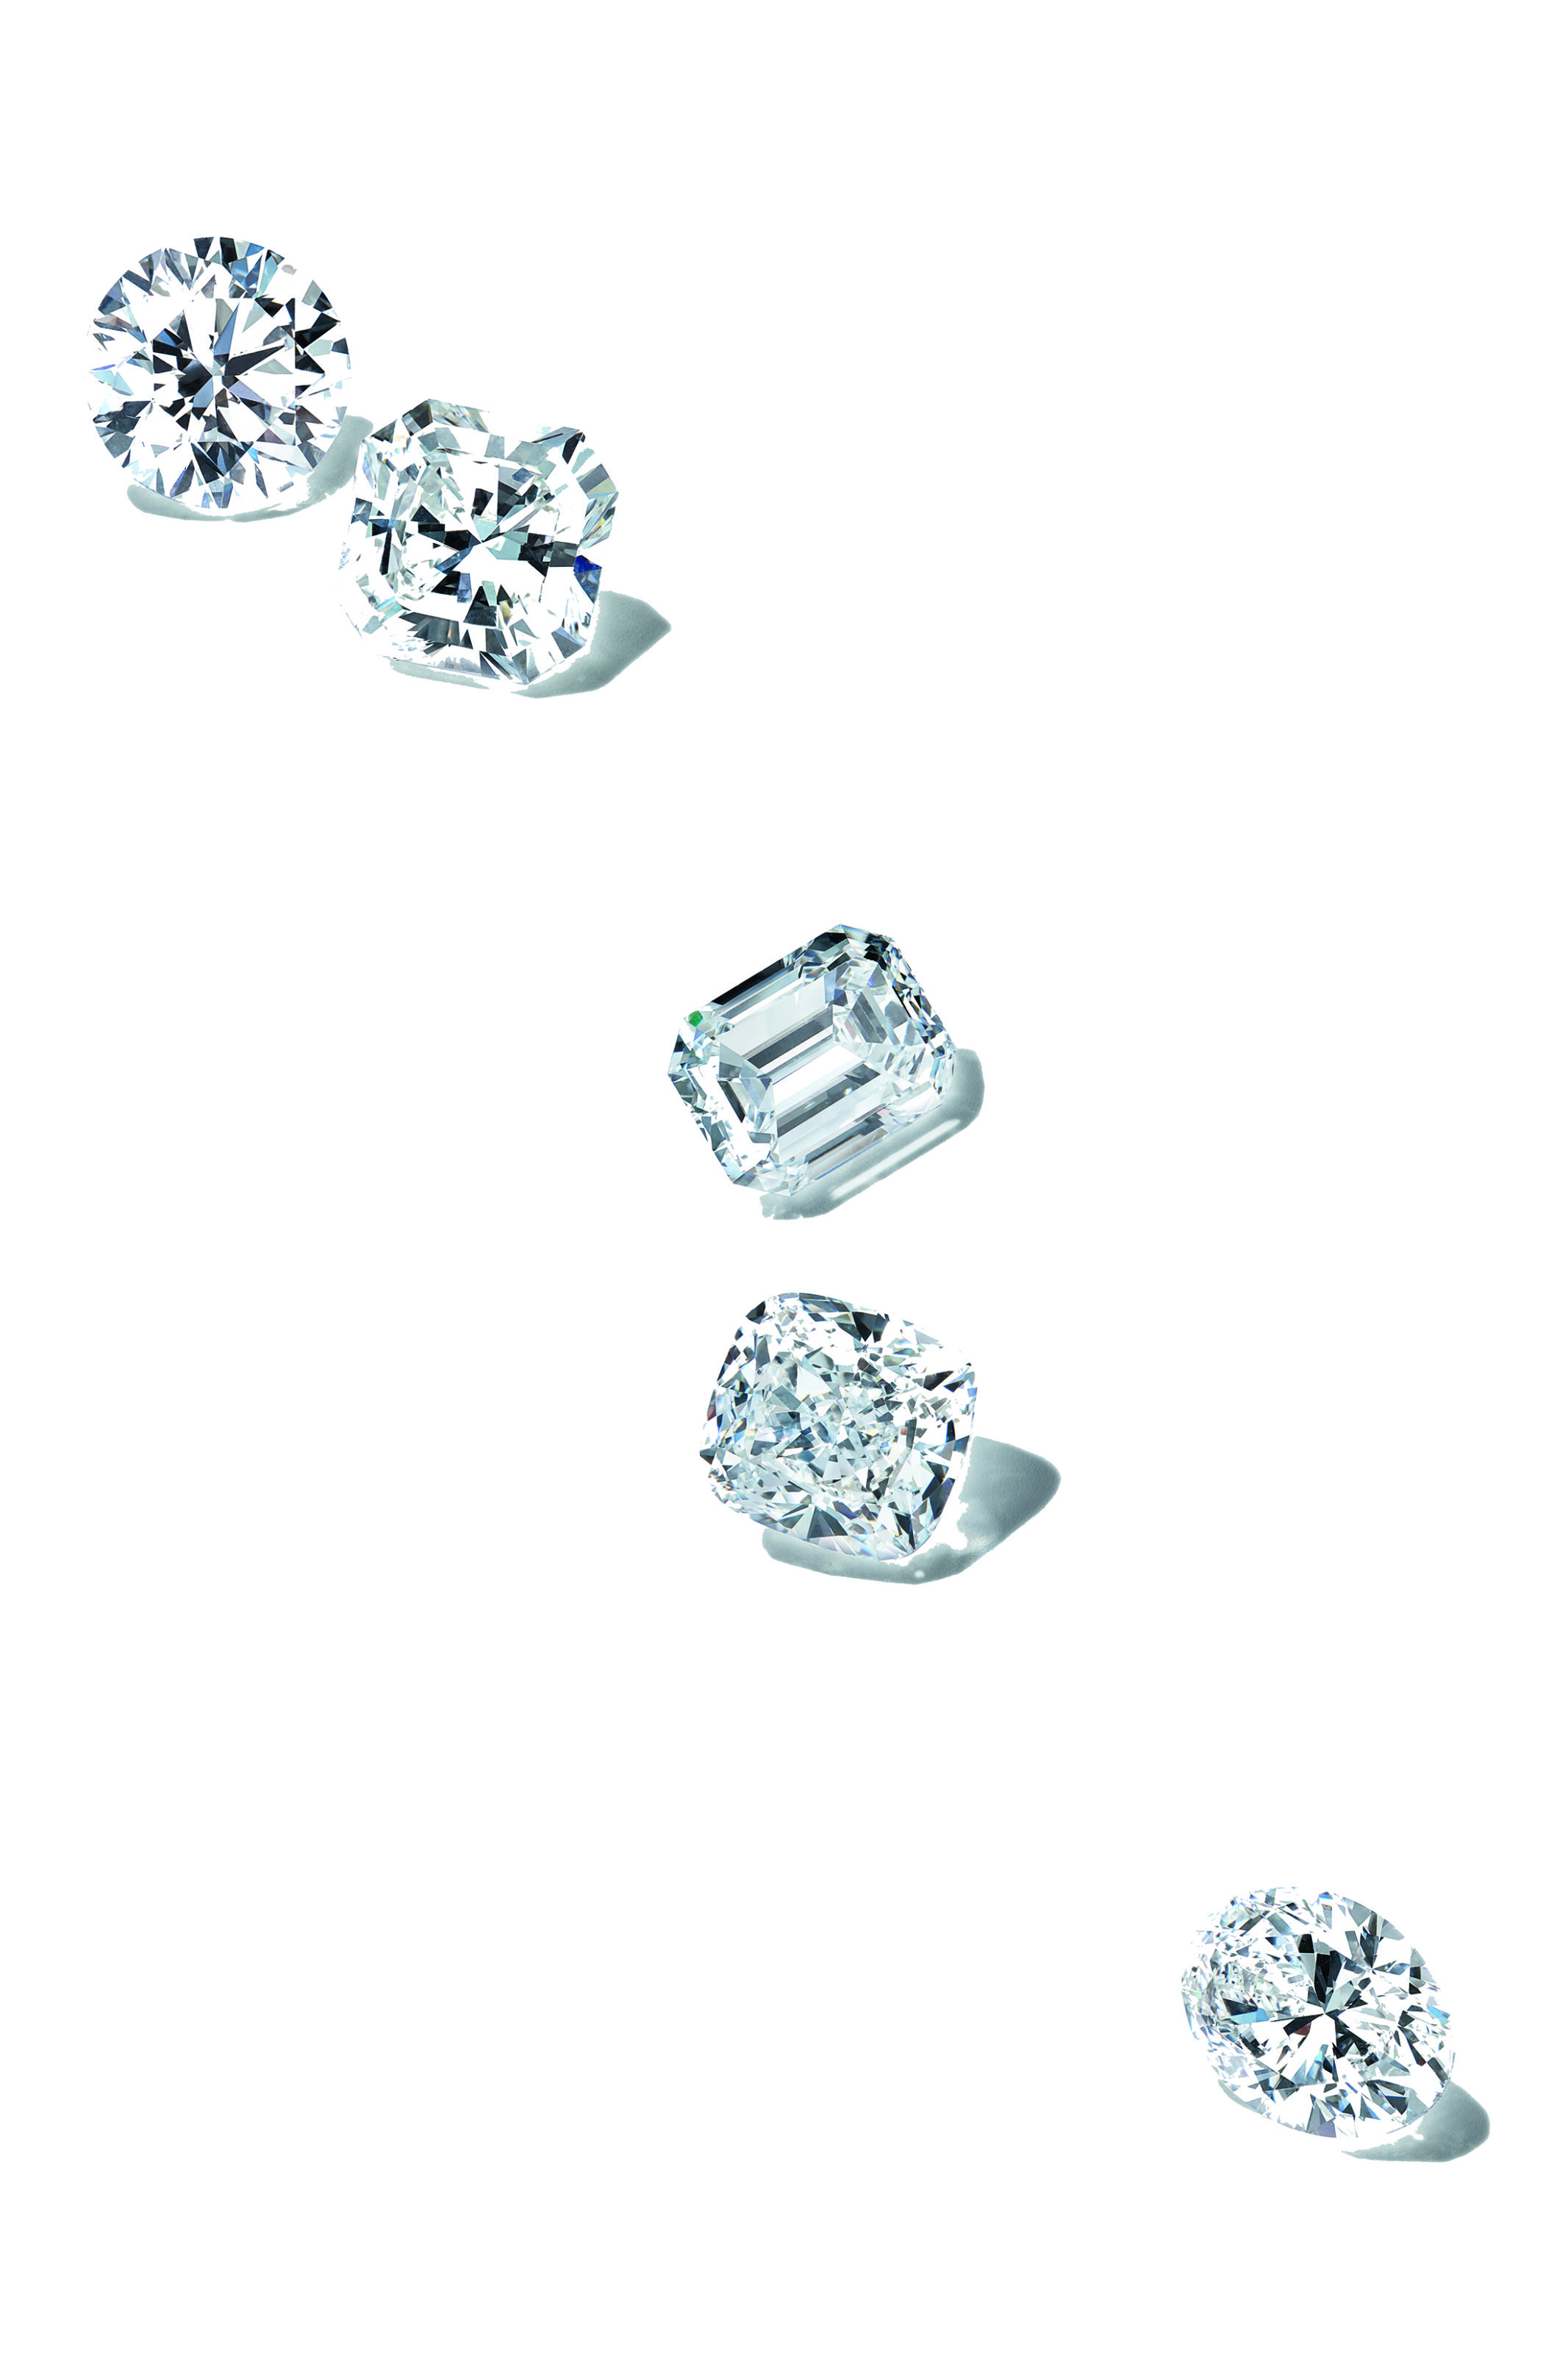 Tiffany loose diamonds after they were sorted, polished and cut. Features a round cut diamond, cushion cut diamond, emerald cut diamond, radiant cut diamond and oval diamond